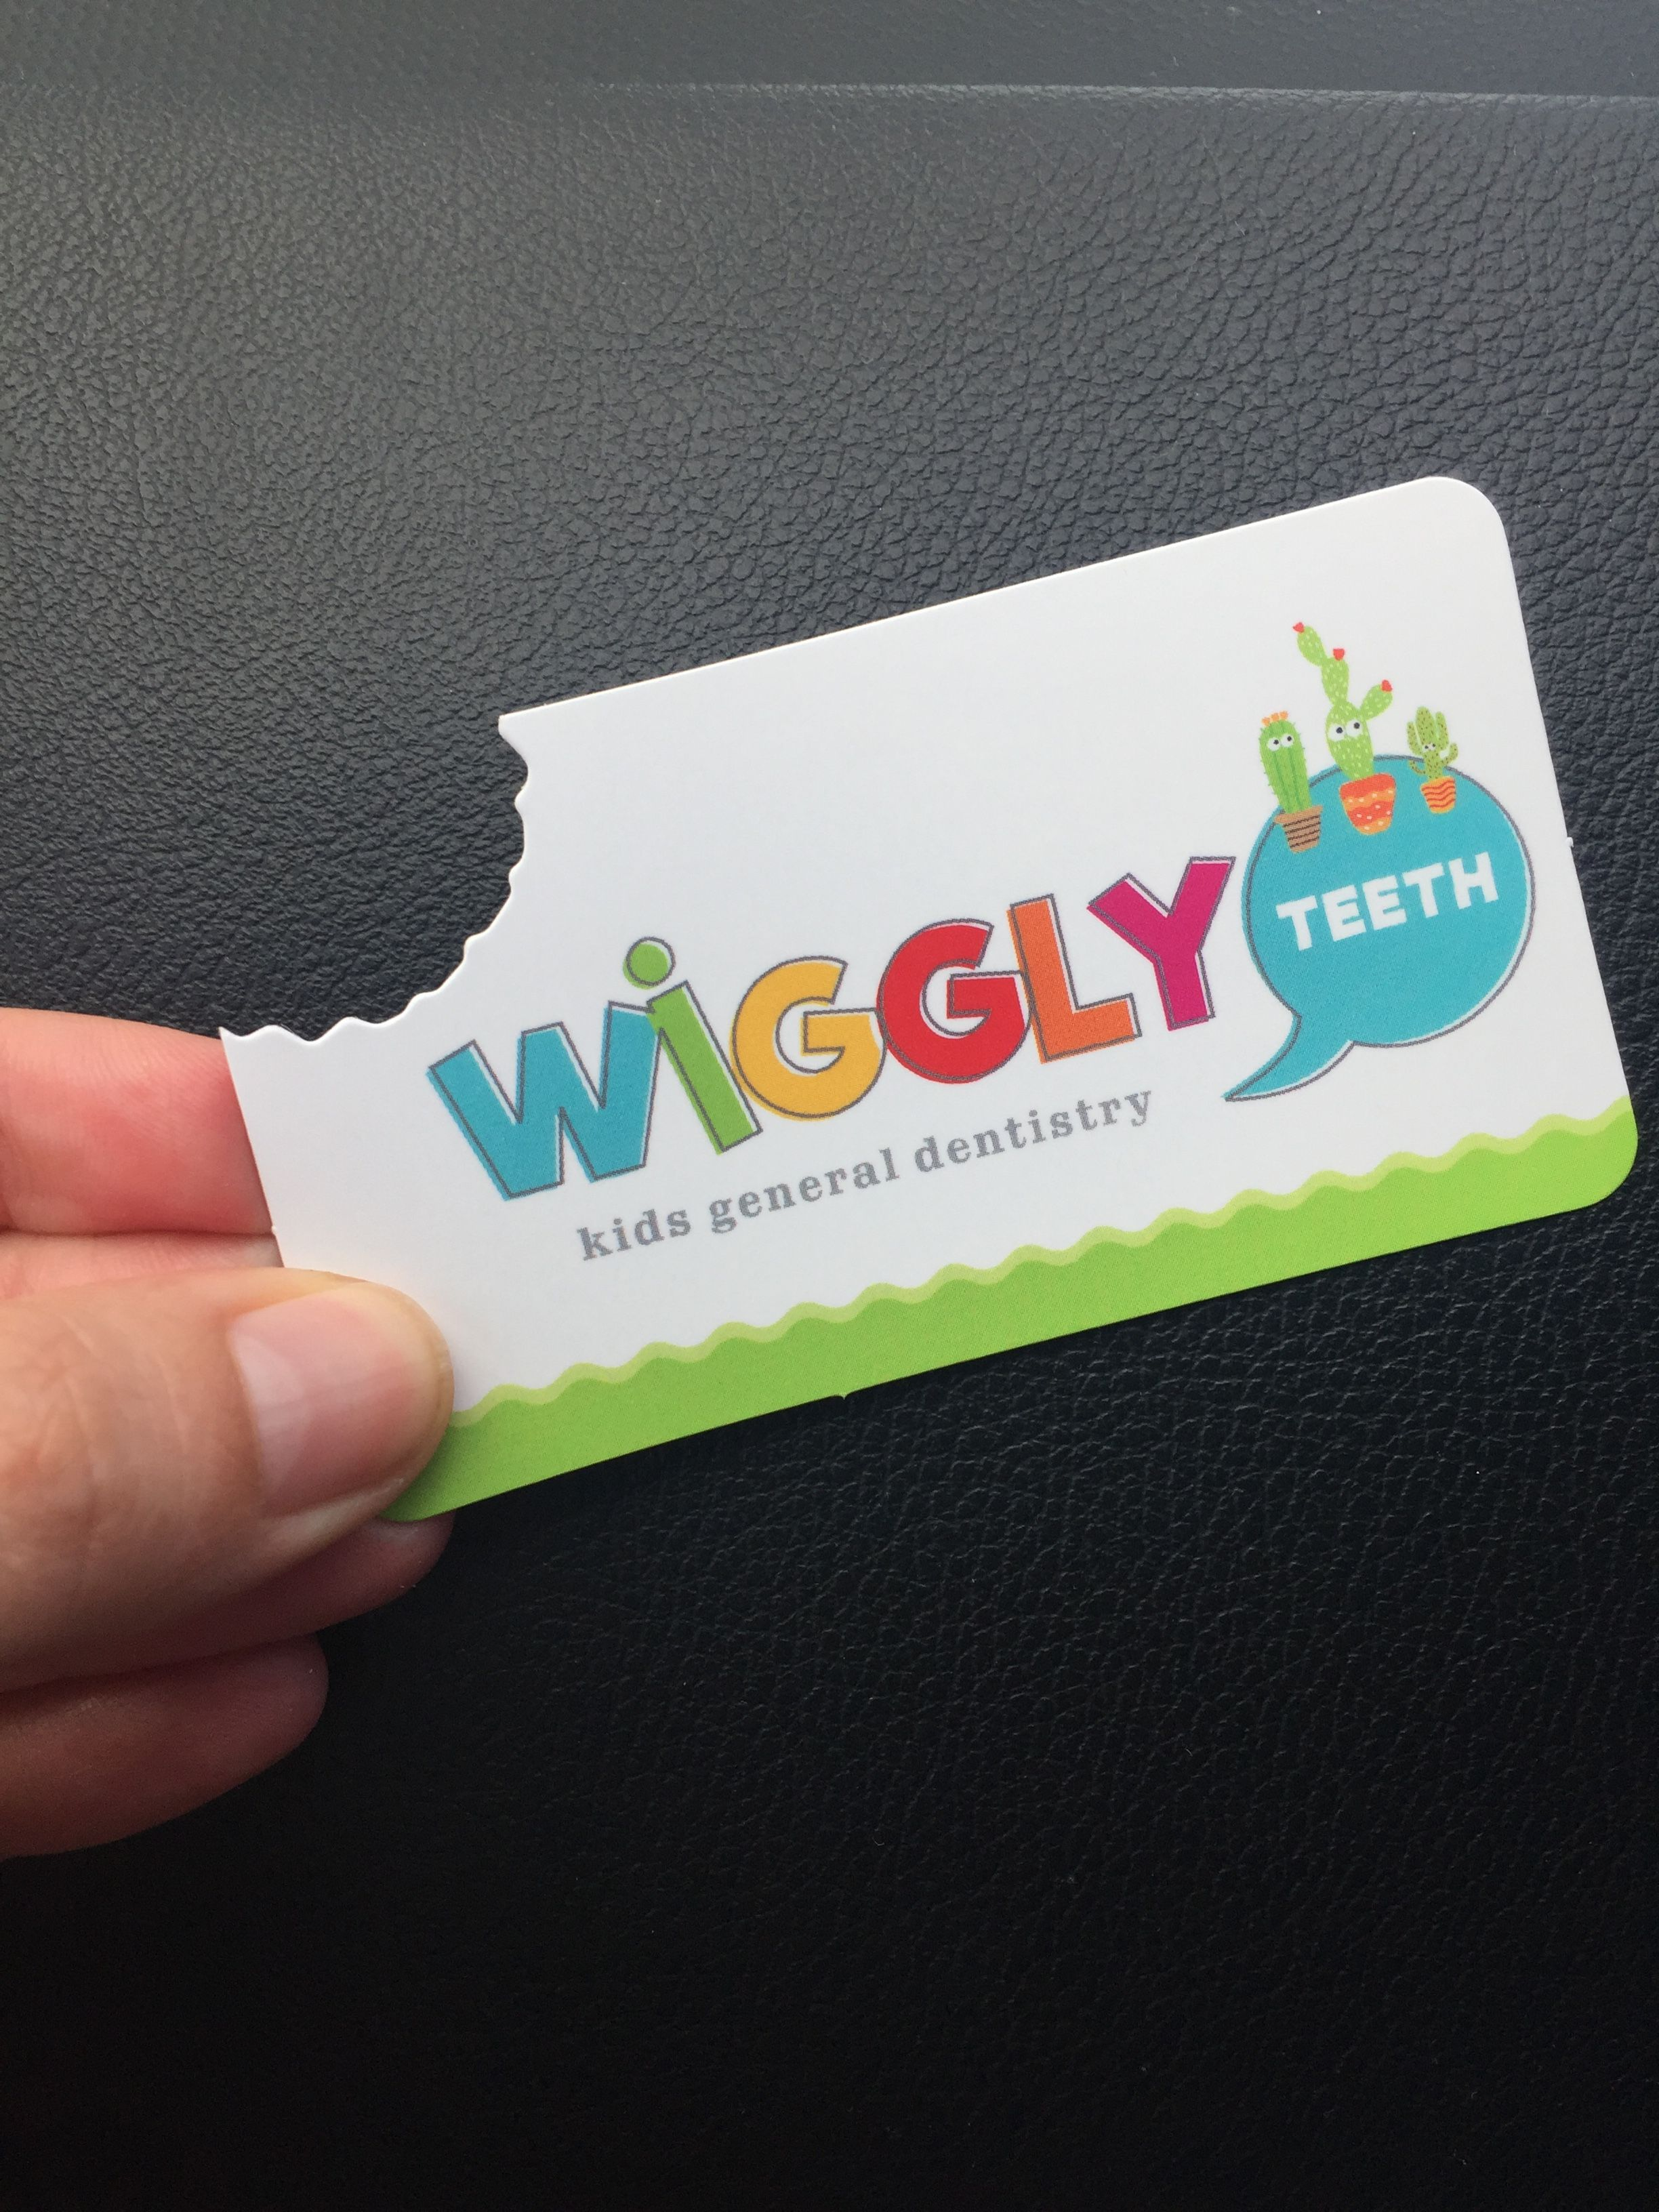 wiggly teeth dentist cut bite mark business card